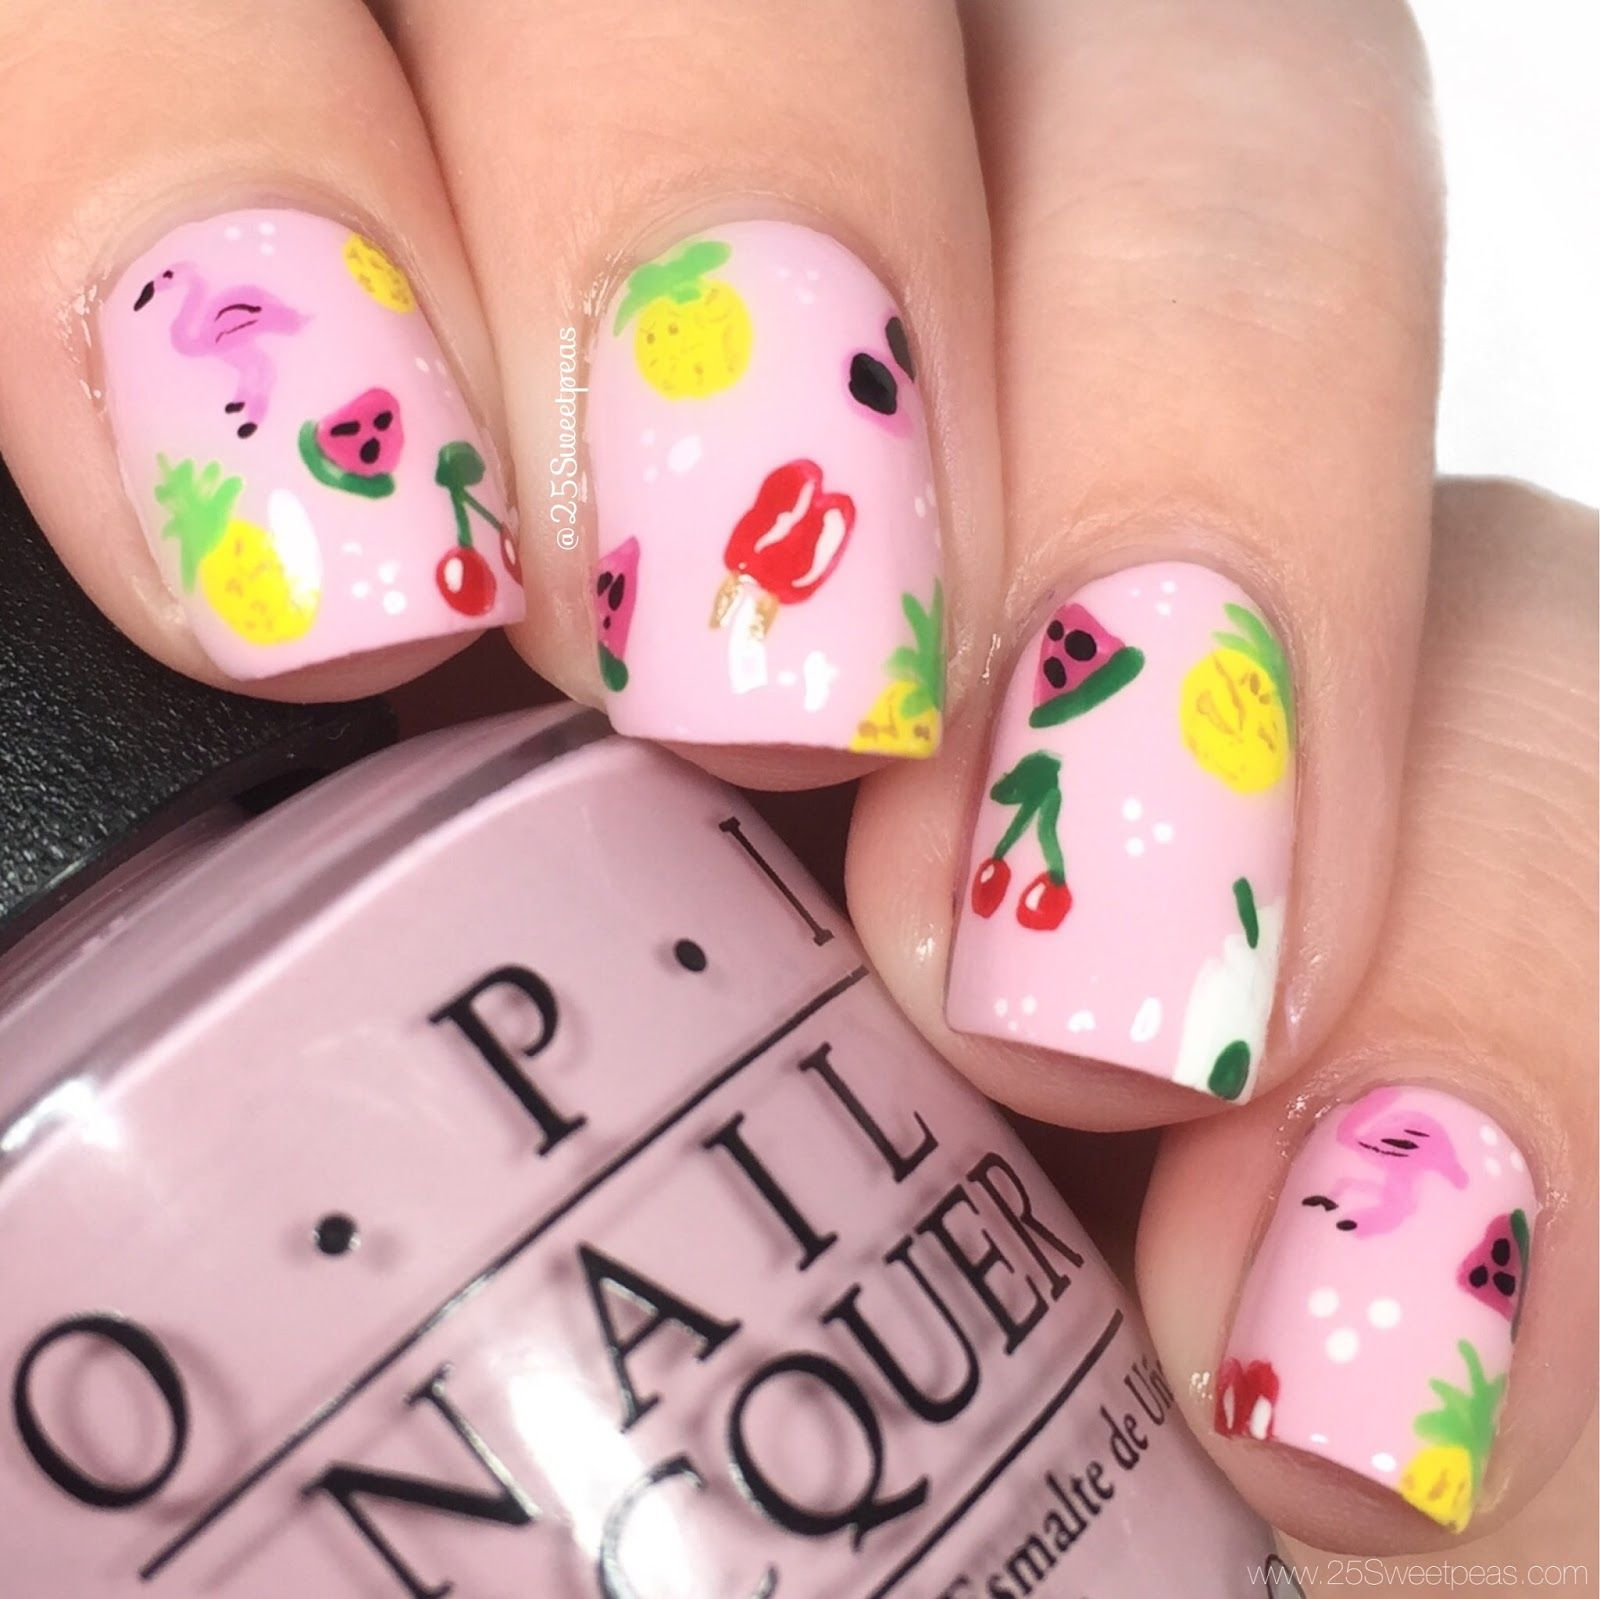 Ban Dō Starbucks Inspired Nails 25 Sweetpeas Nails Nail Colors Nail Art